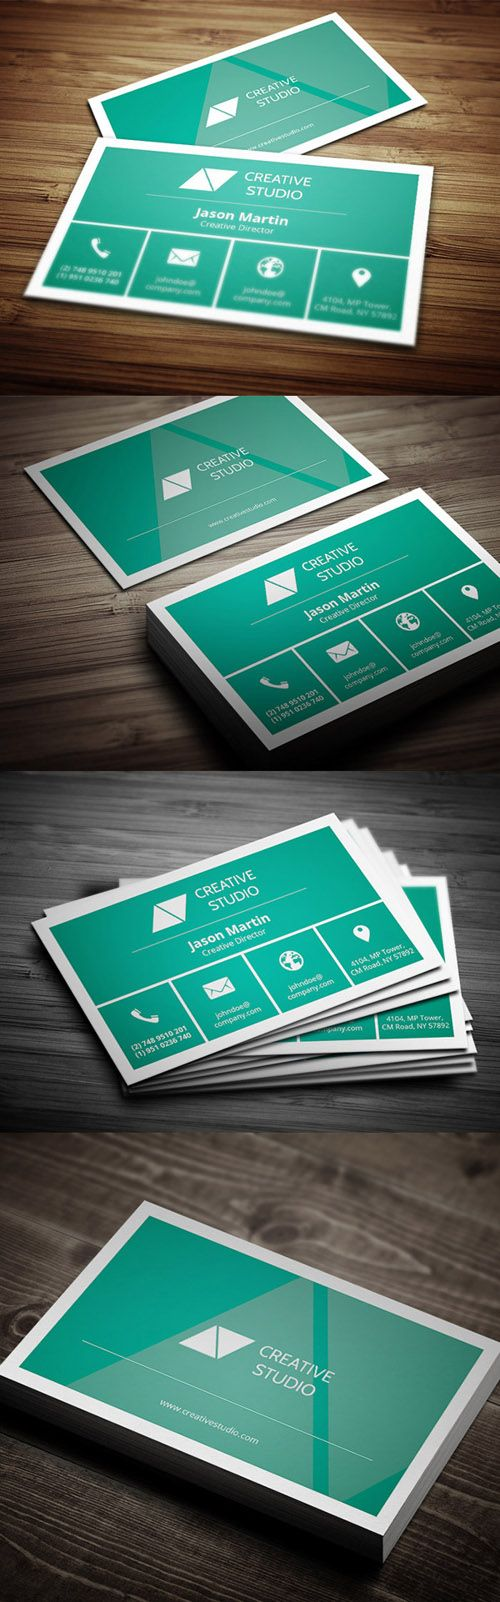 Best 25+ Business card design ideas on Pinterest